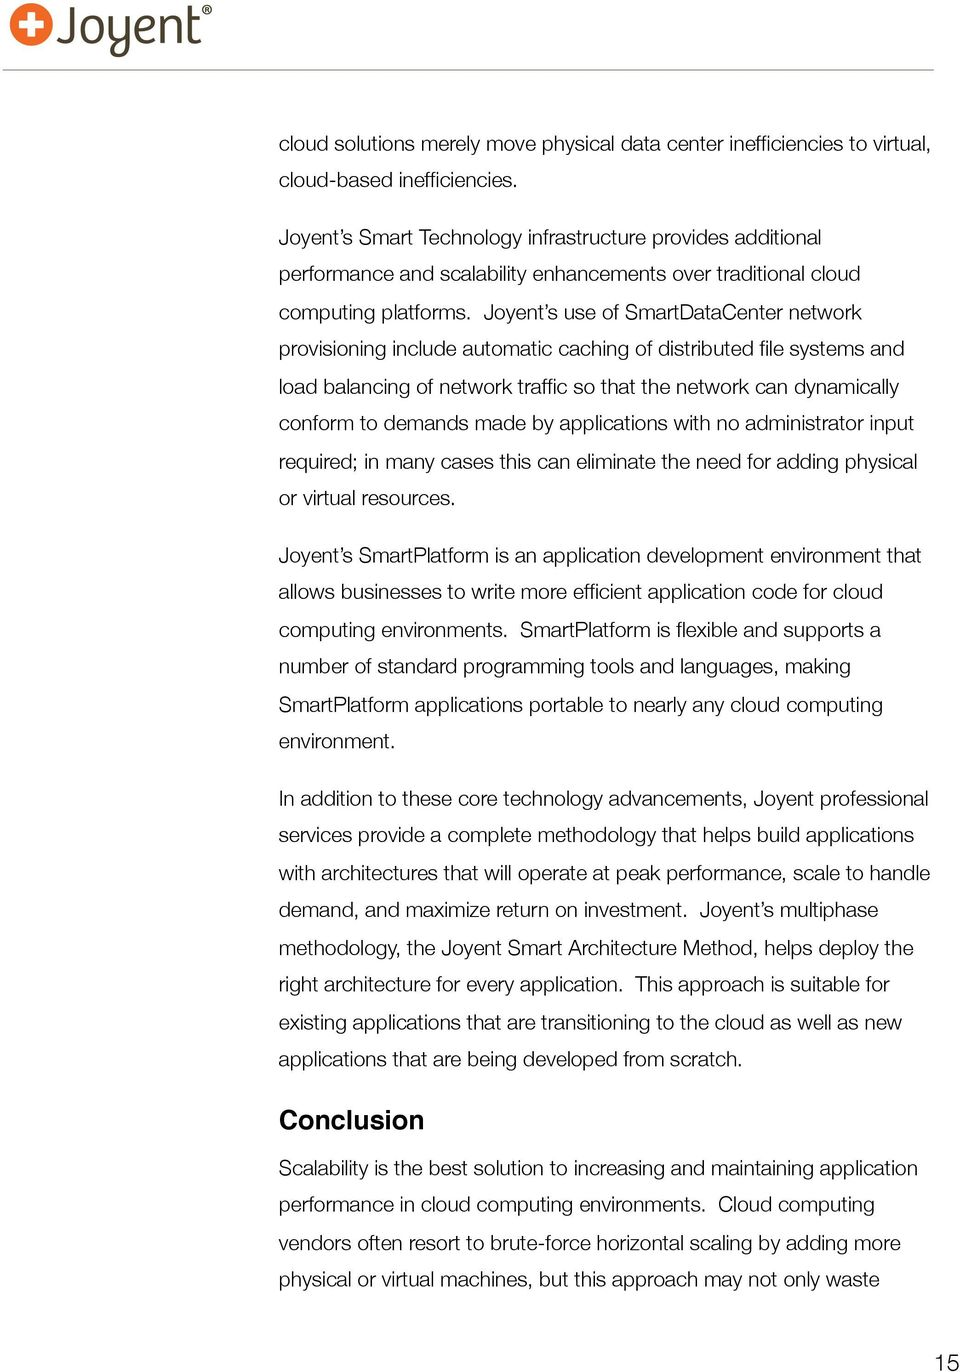 Joyent s use of SmartDataCenter network provisioning include automatic caching of distributed file systems and load balancing of network traffic so that the network can dynamically conform to demands